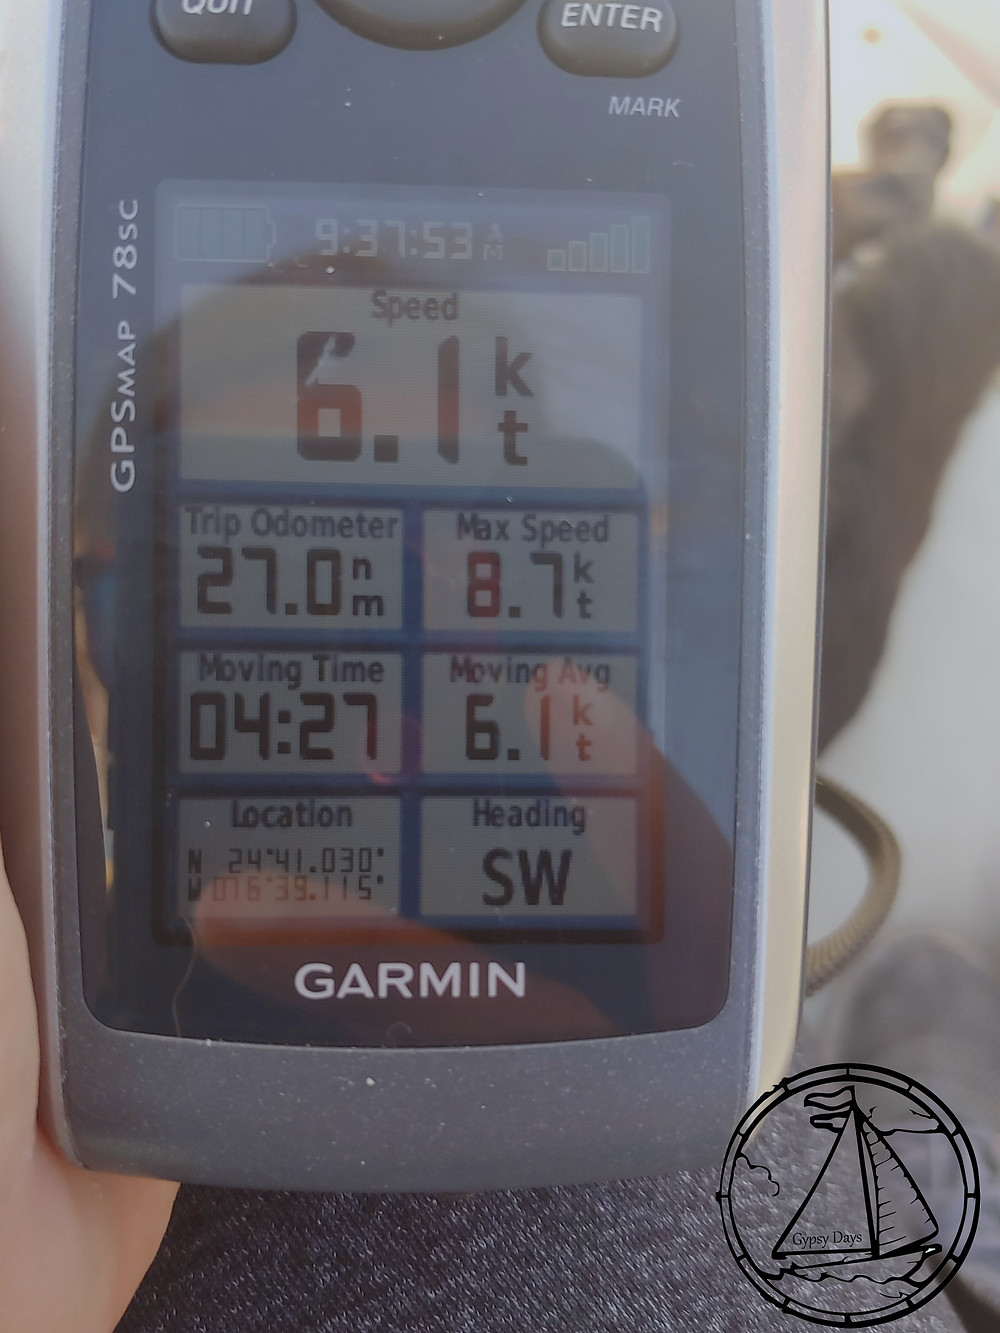 gps, garmin, average speed, 6 knots, motorsailing